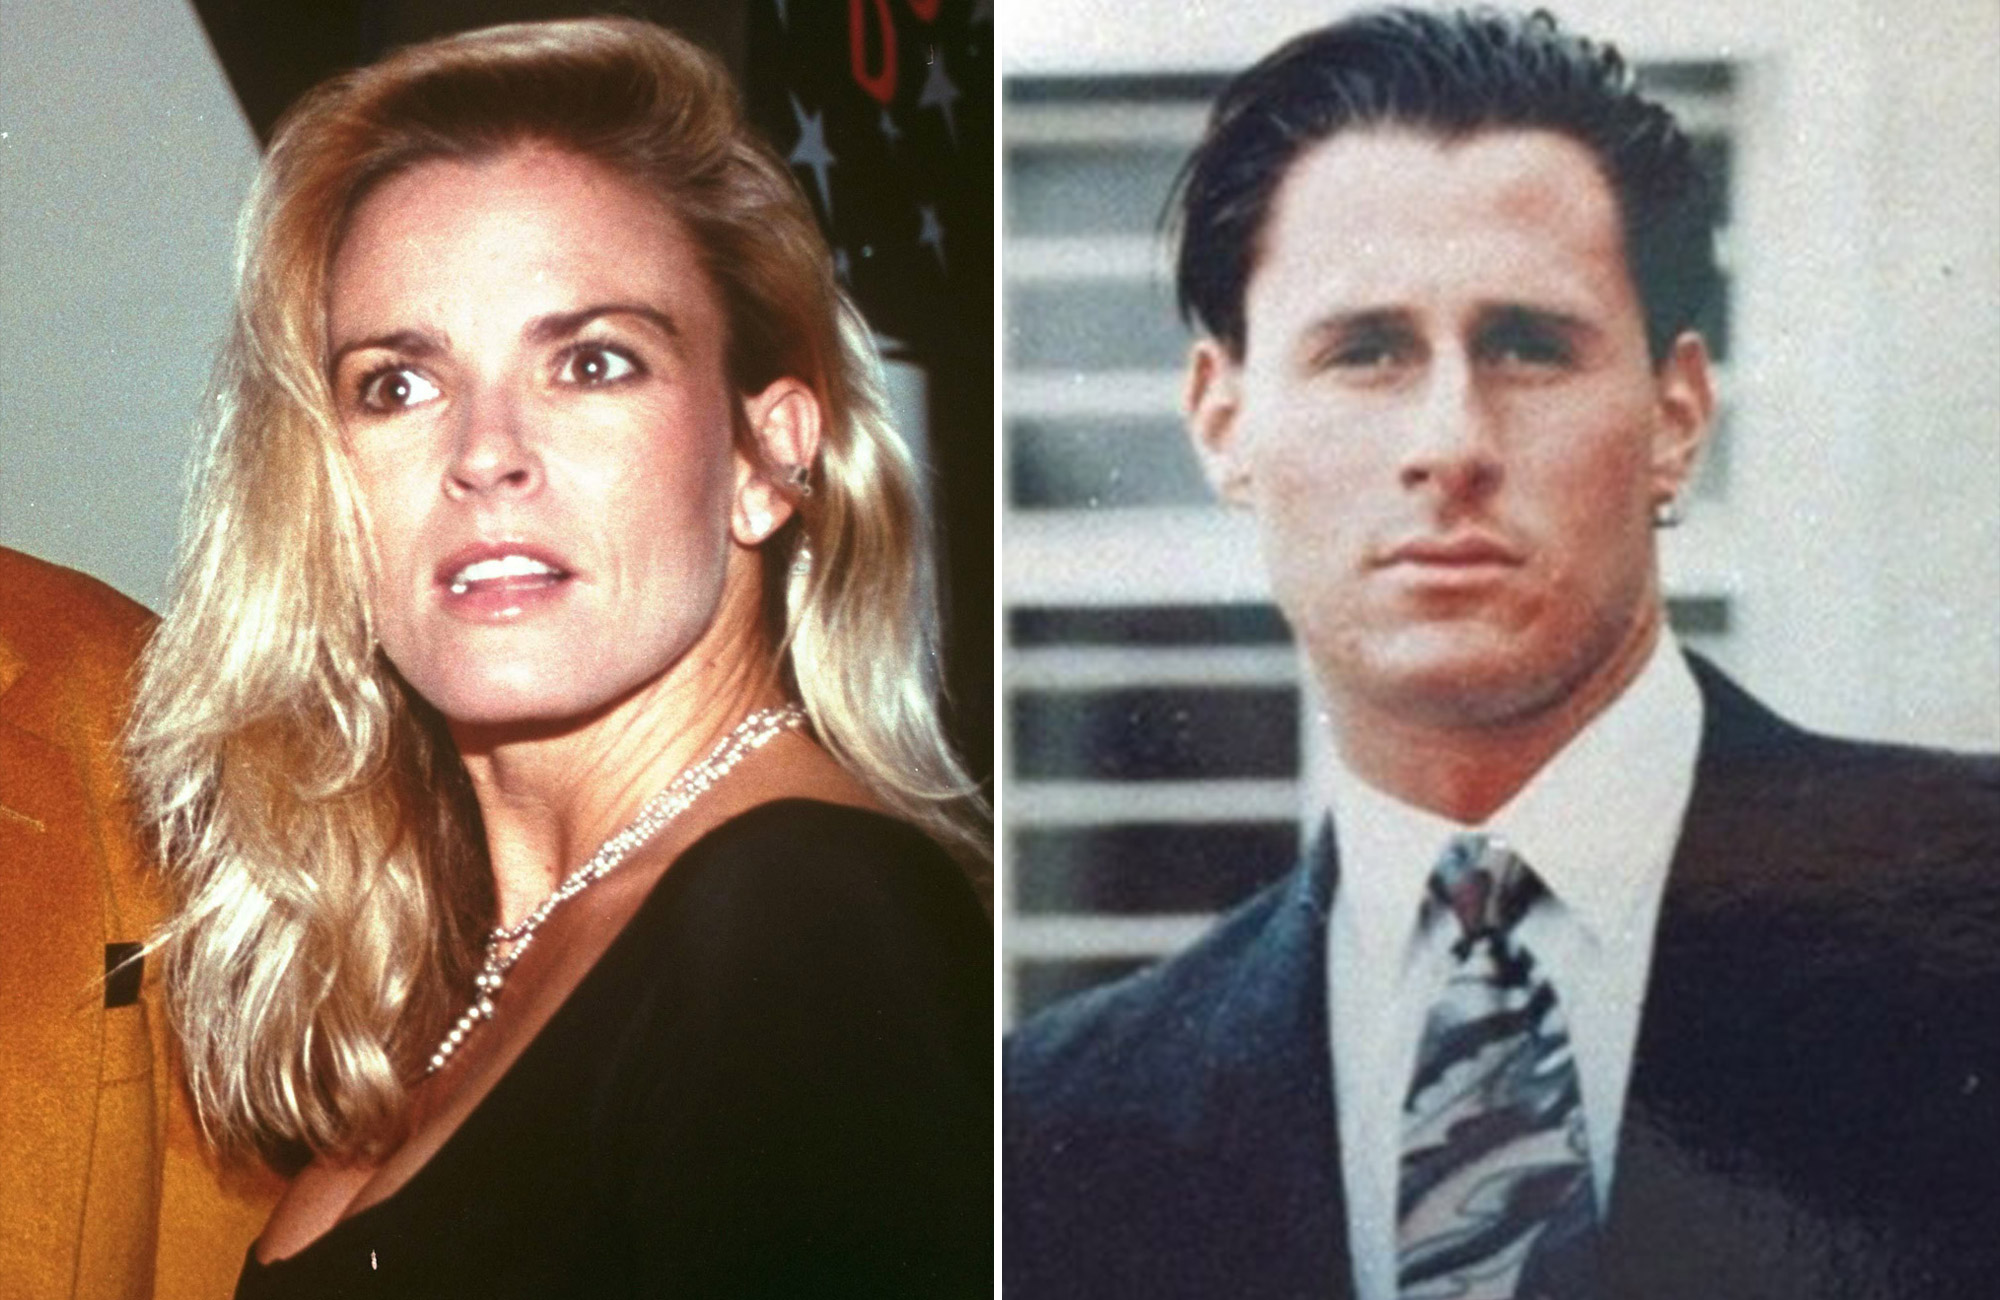 Nicole Simpson, Ronald Goldman